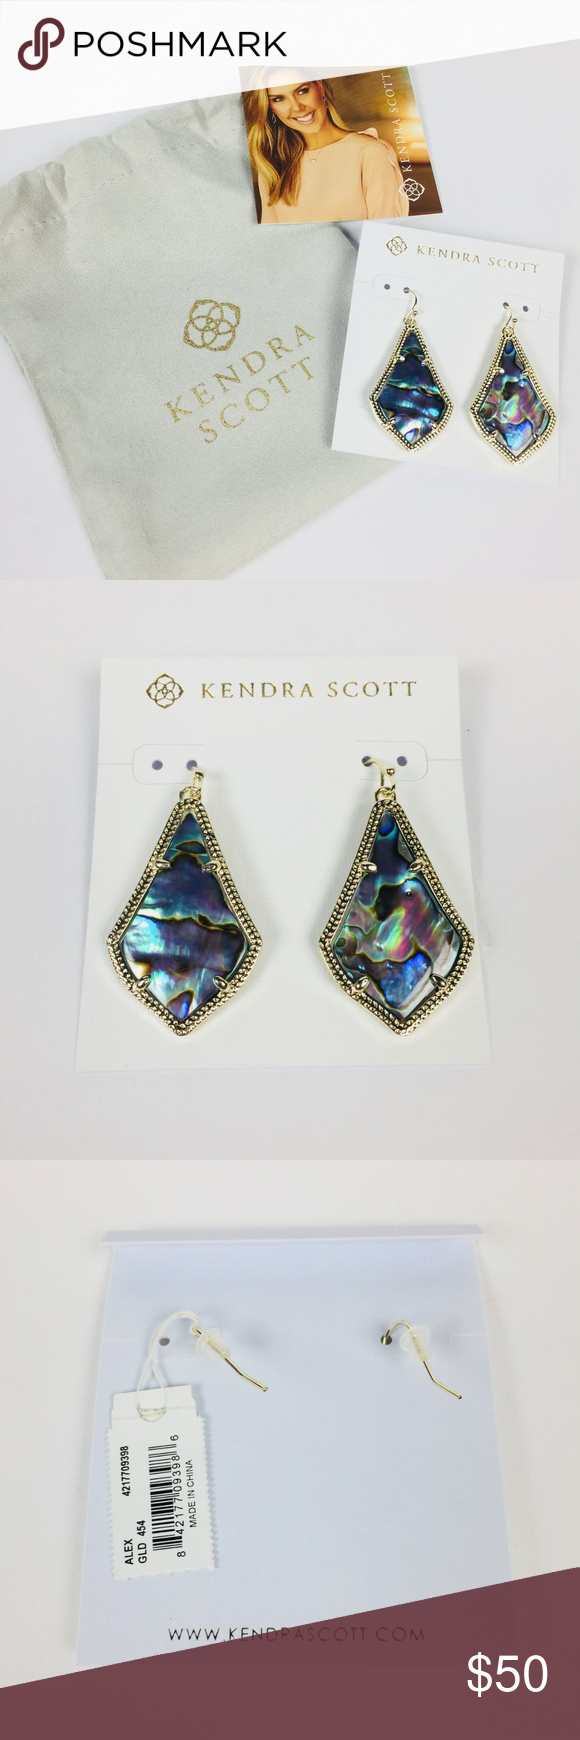 f2bd4c6b2cad Kendra Scott Alex Earring Gold Abalone Shell NWT DETAILS A classic  silhouette in a delicate metallic frame